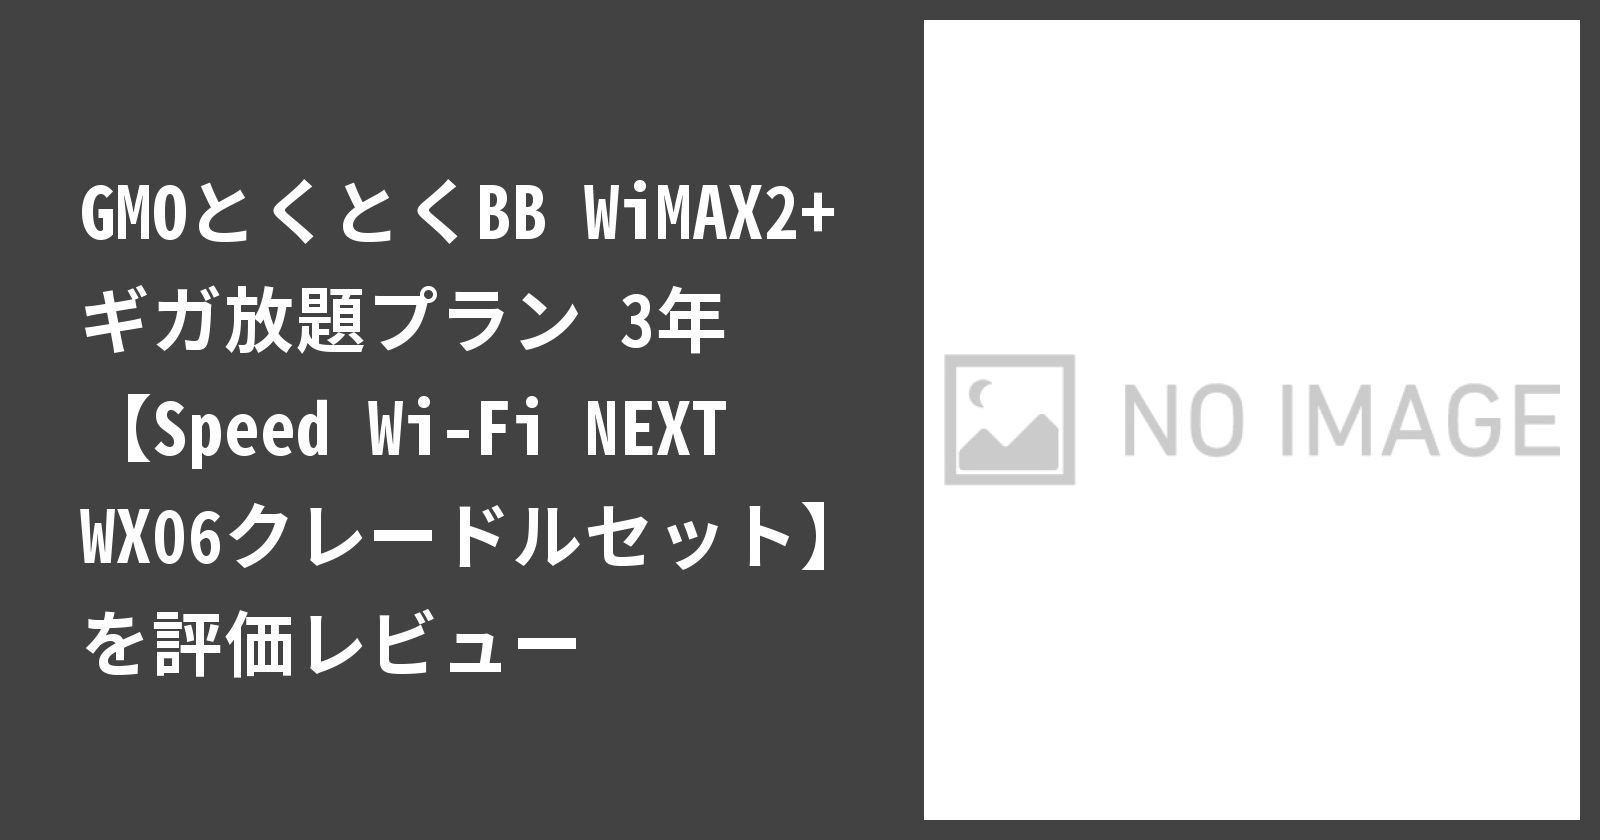 GMOとくとくBB WiMAX2+ ギガ放題プラン 3年 【Speed Wi-Fi NEXT WX06クレードルセット】を徹底評価